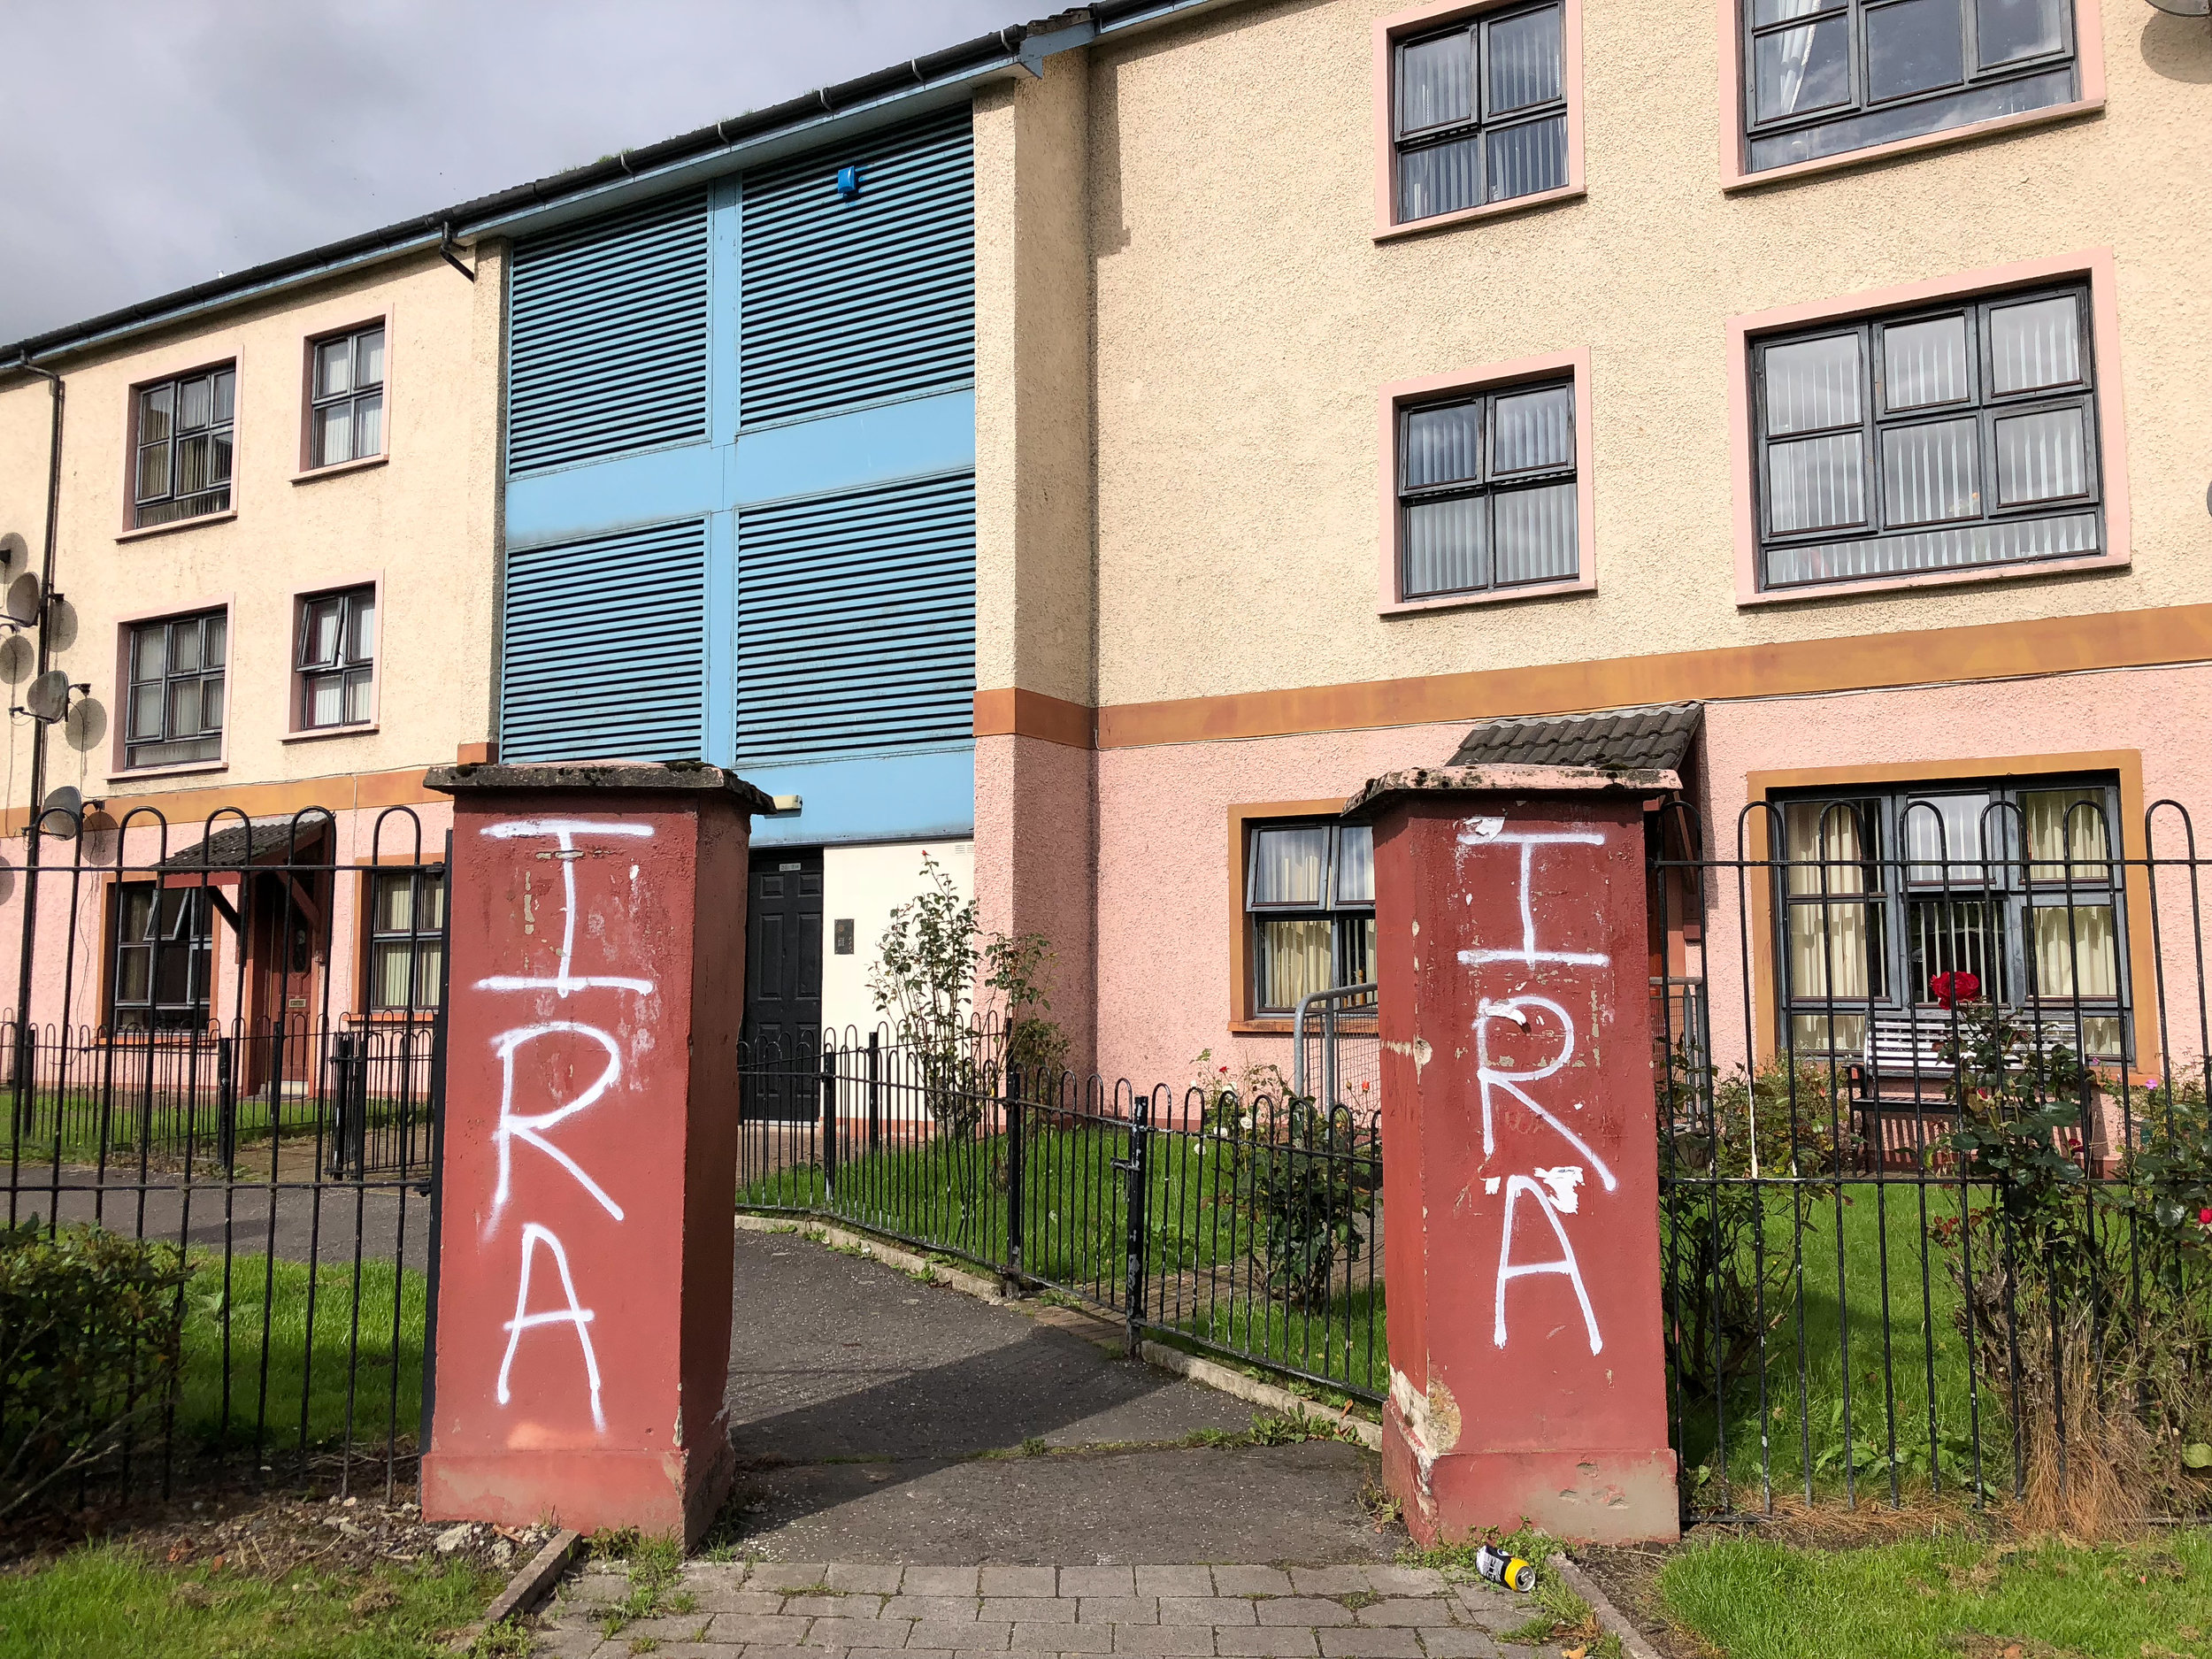 The legacy of the Troubles in Derry, Northern Ireland.